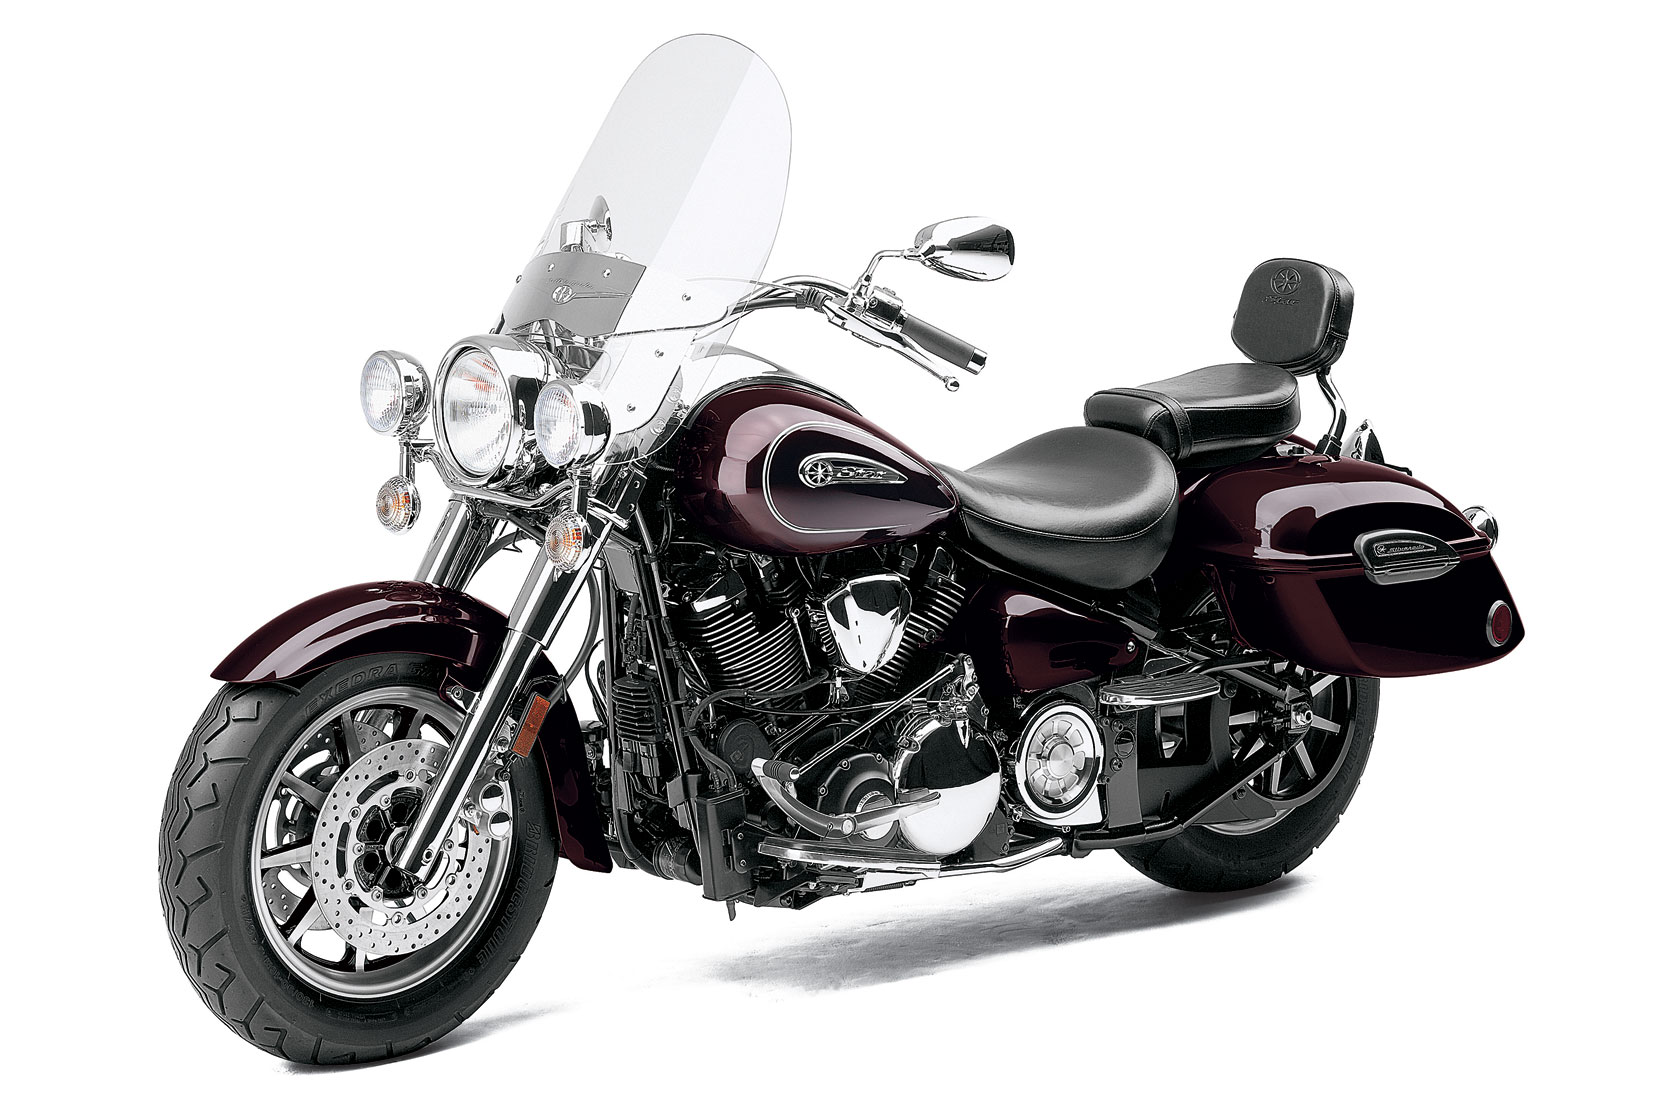 Yamaha Road Star S 2011 #4